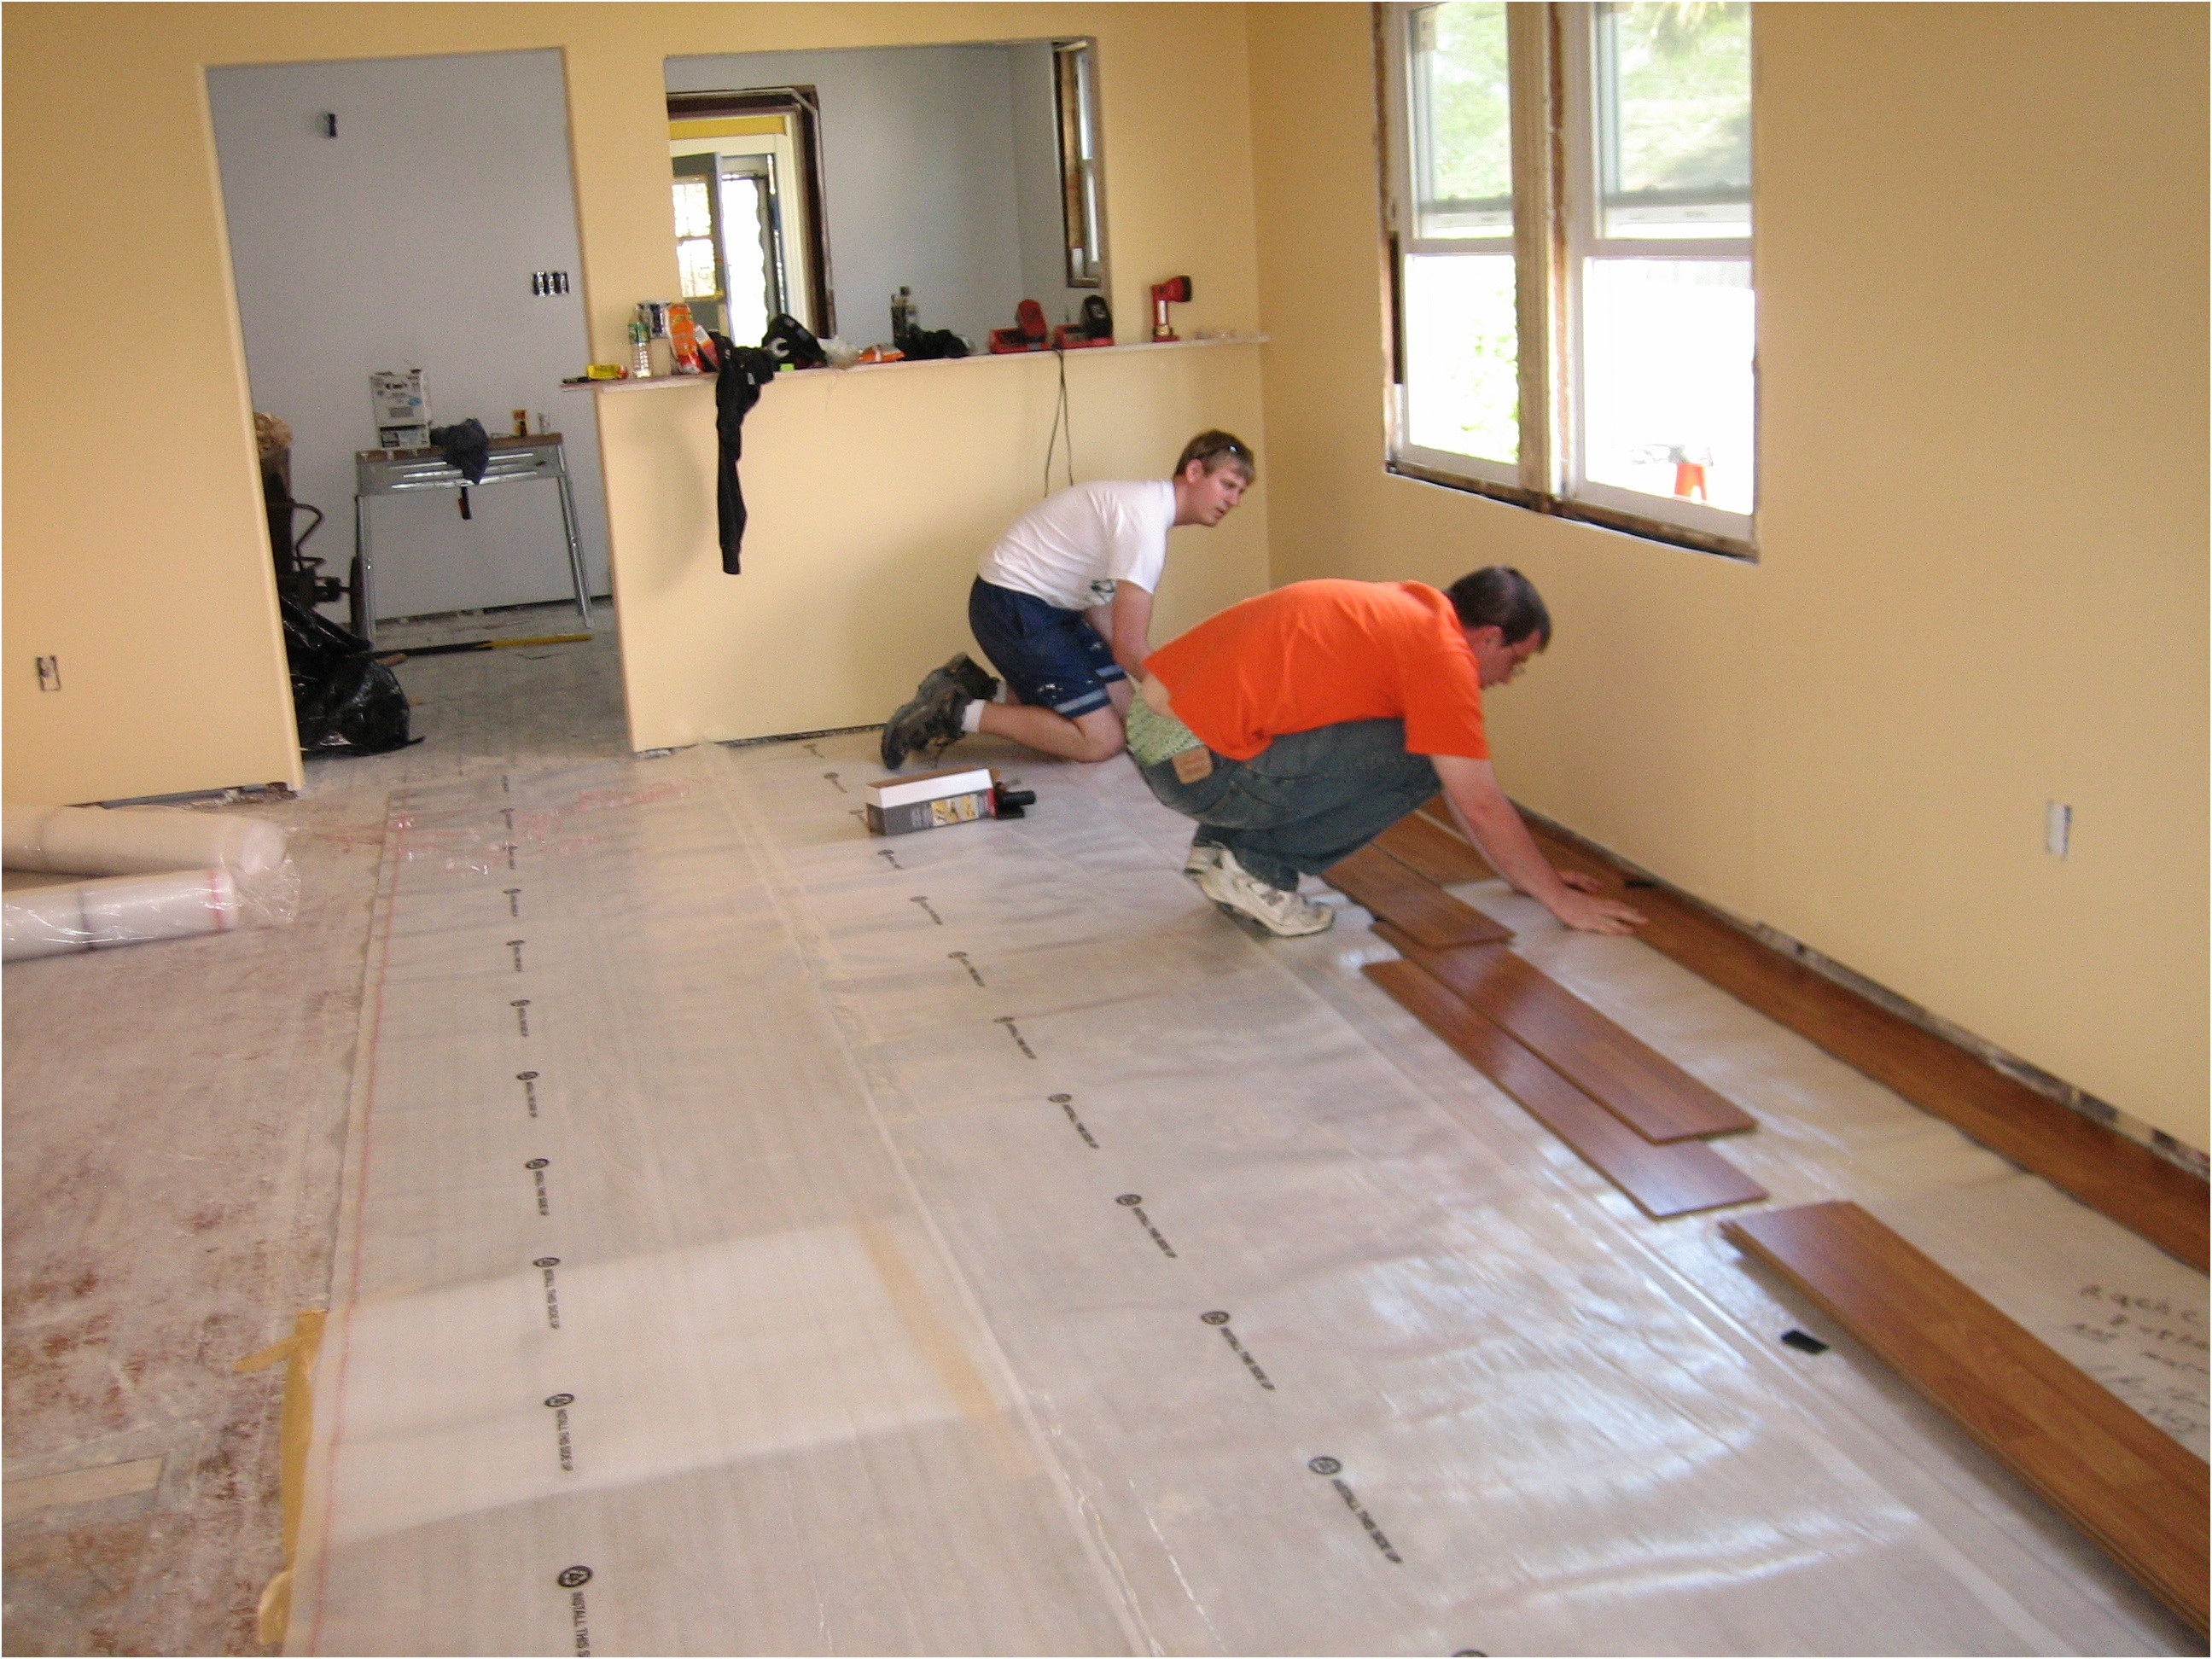 prefinished hardwood flooring price per square foot installed of how to install prefinished hardwood flooring on concrete flooring for how to install prefinished hardwood flooring on concrete unique floor floor woodlation cost houston tx omaha